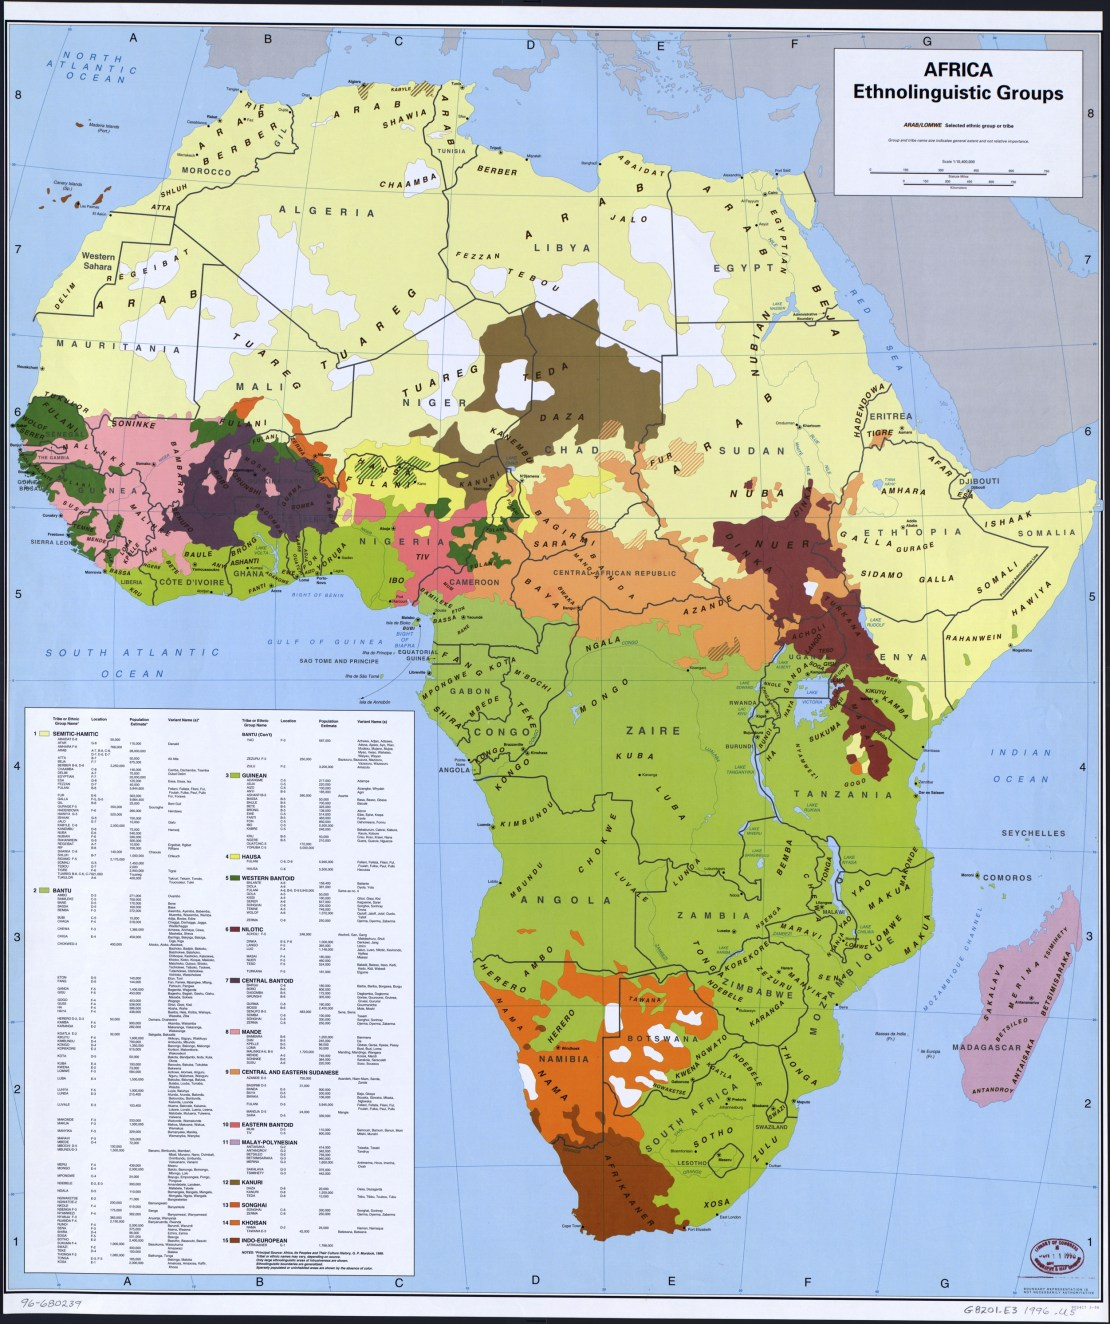 Map showing the main ethnicities in Africa.